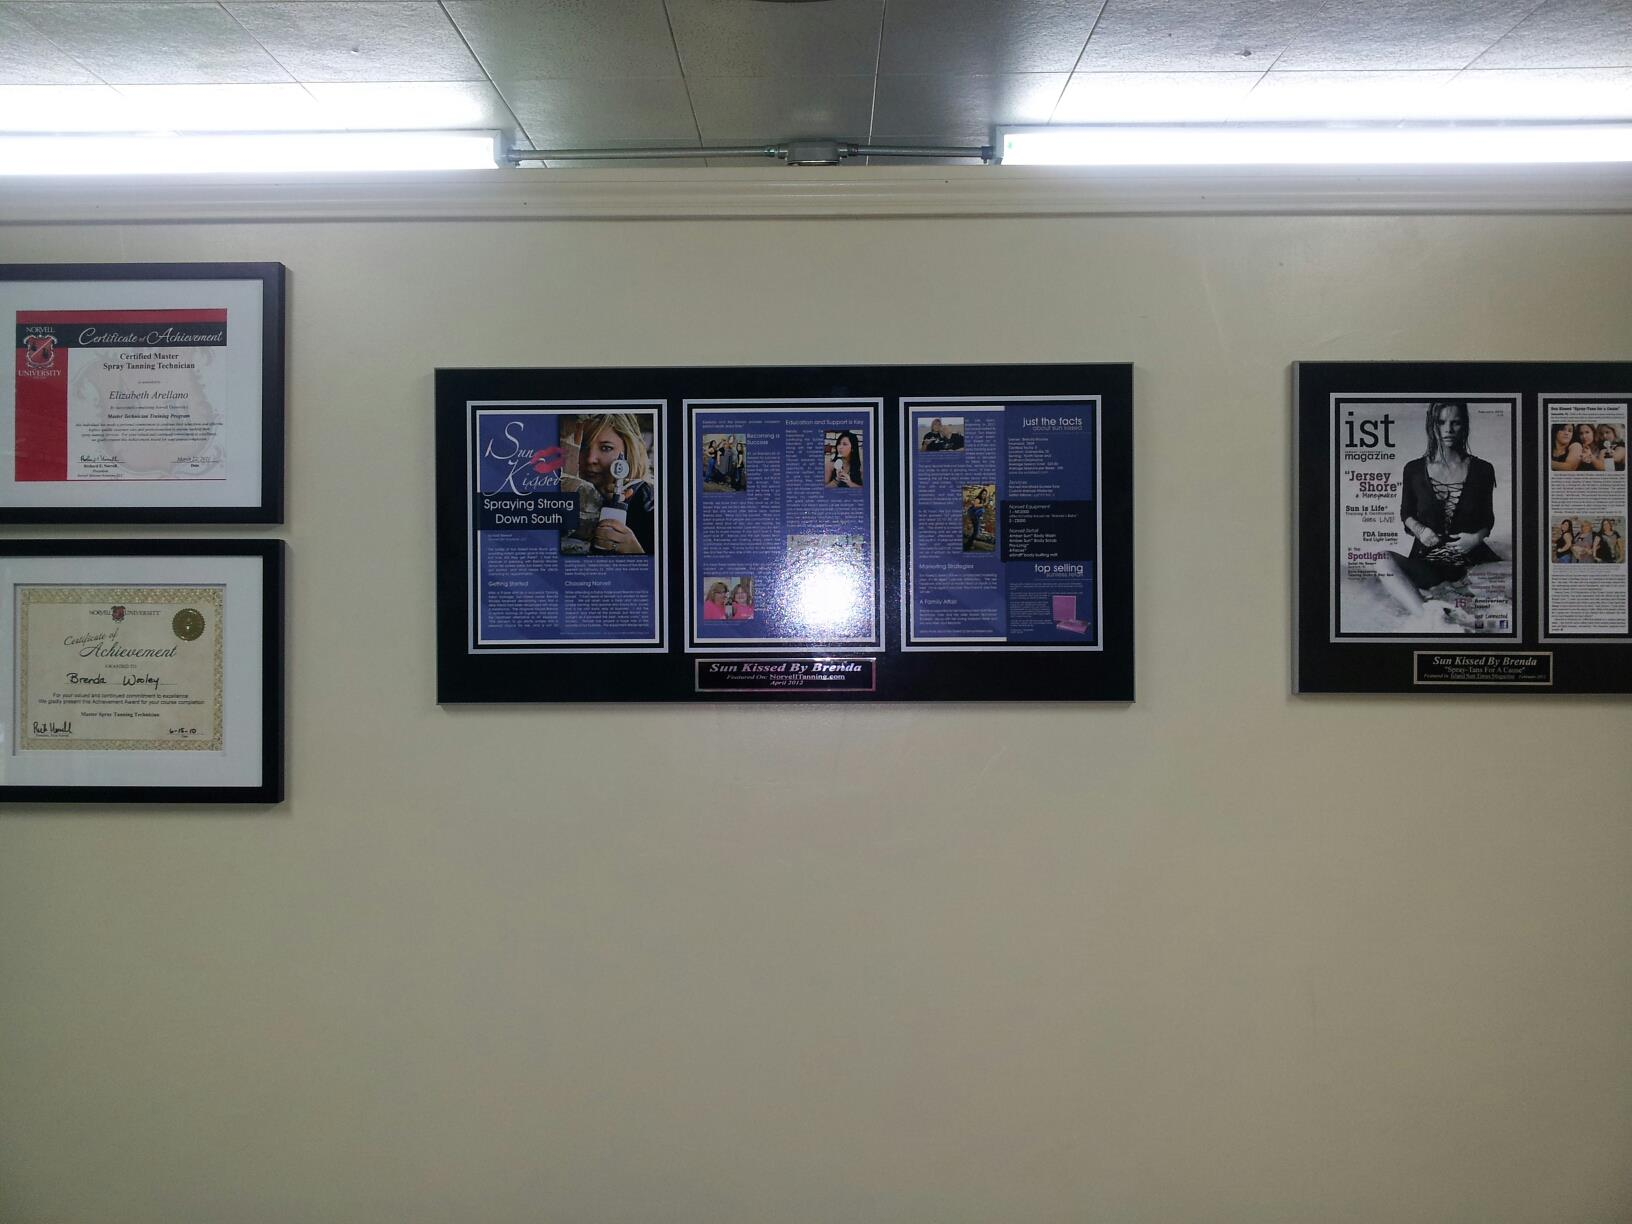 framing magazine articles, magazine articles framed, magazine plaques